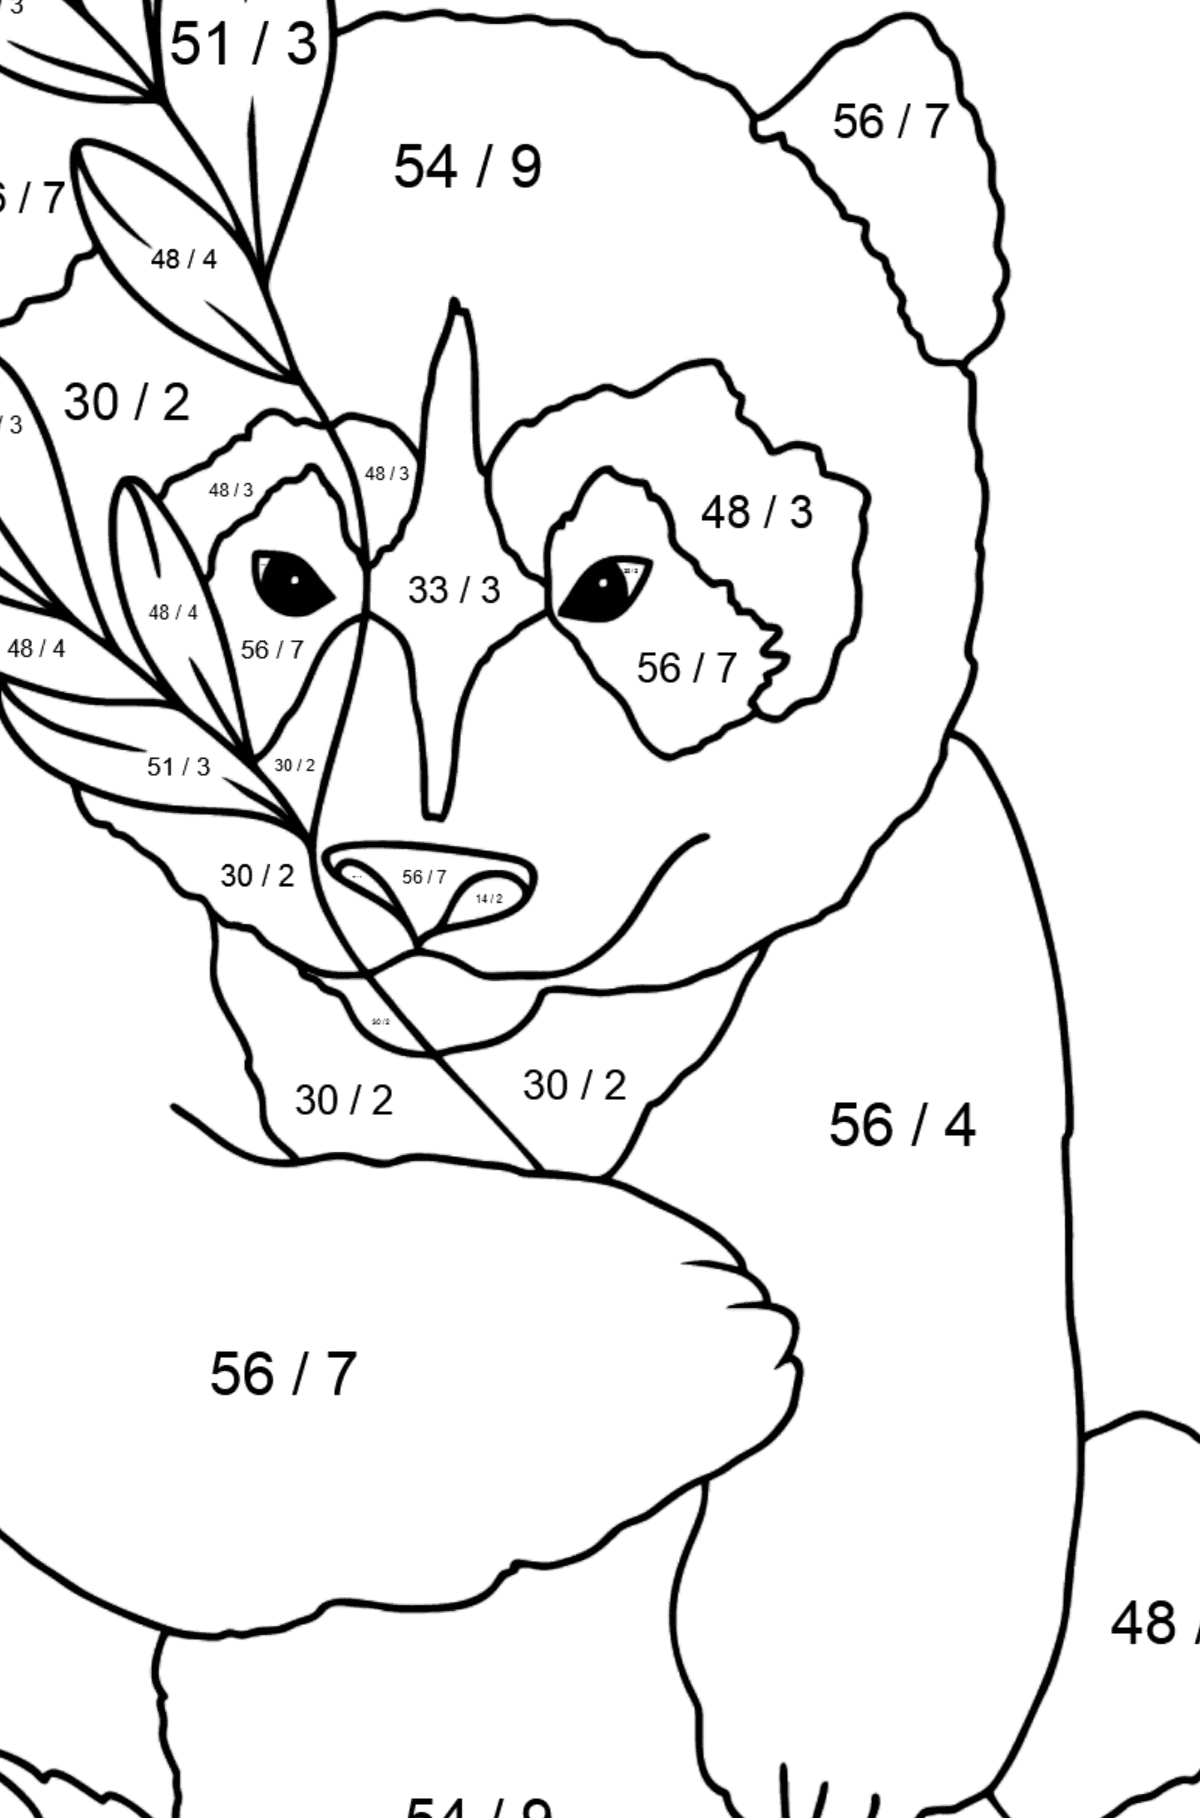 Coloring Page - A Panda is Having a Rest - Math Coloring - Division for Kids